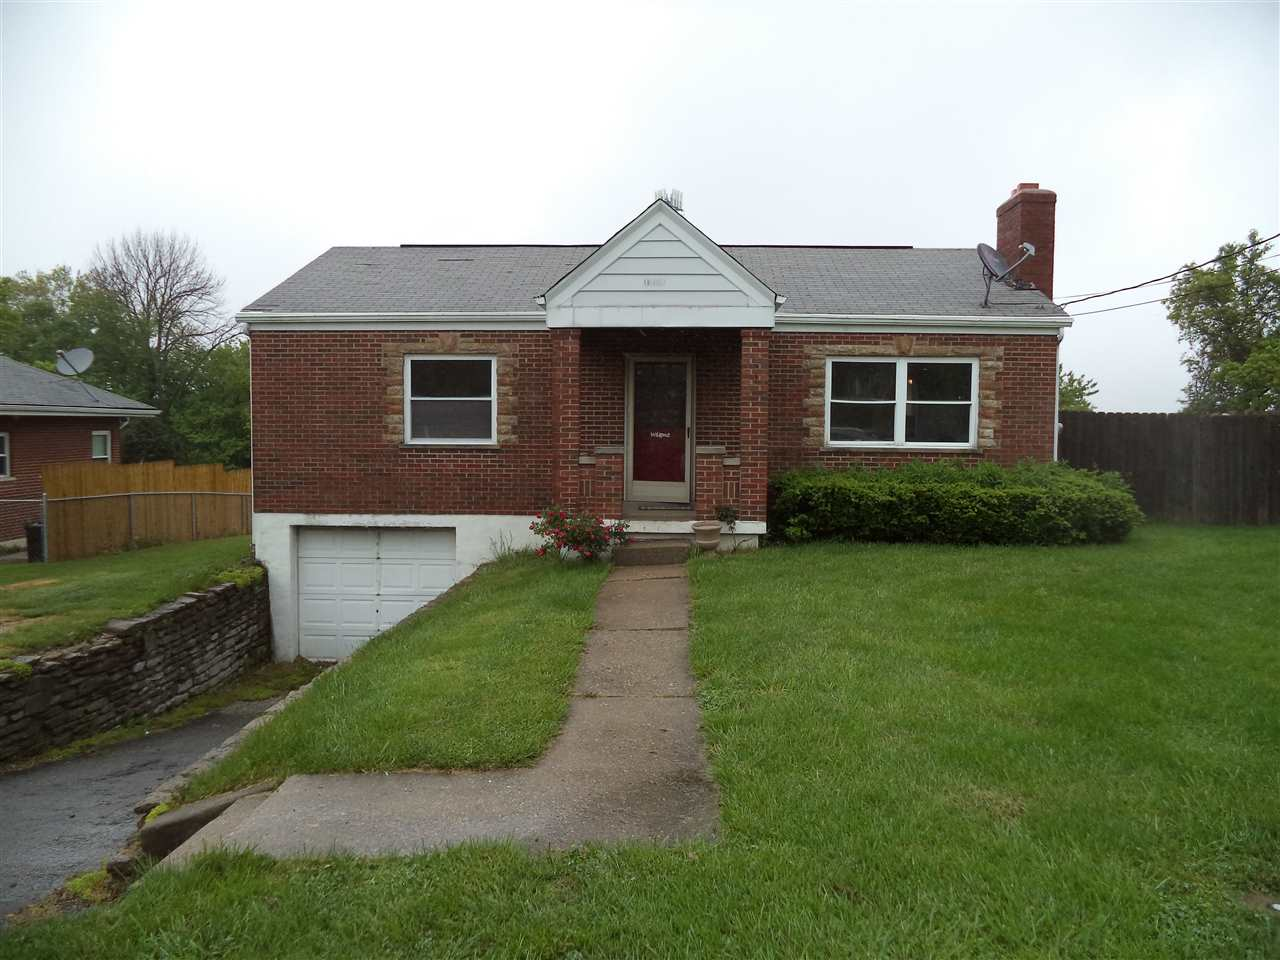 Photo 1 for 1206 Donaldson Hwy Erlanger, KY 41018